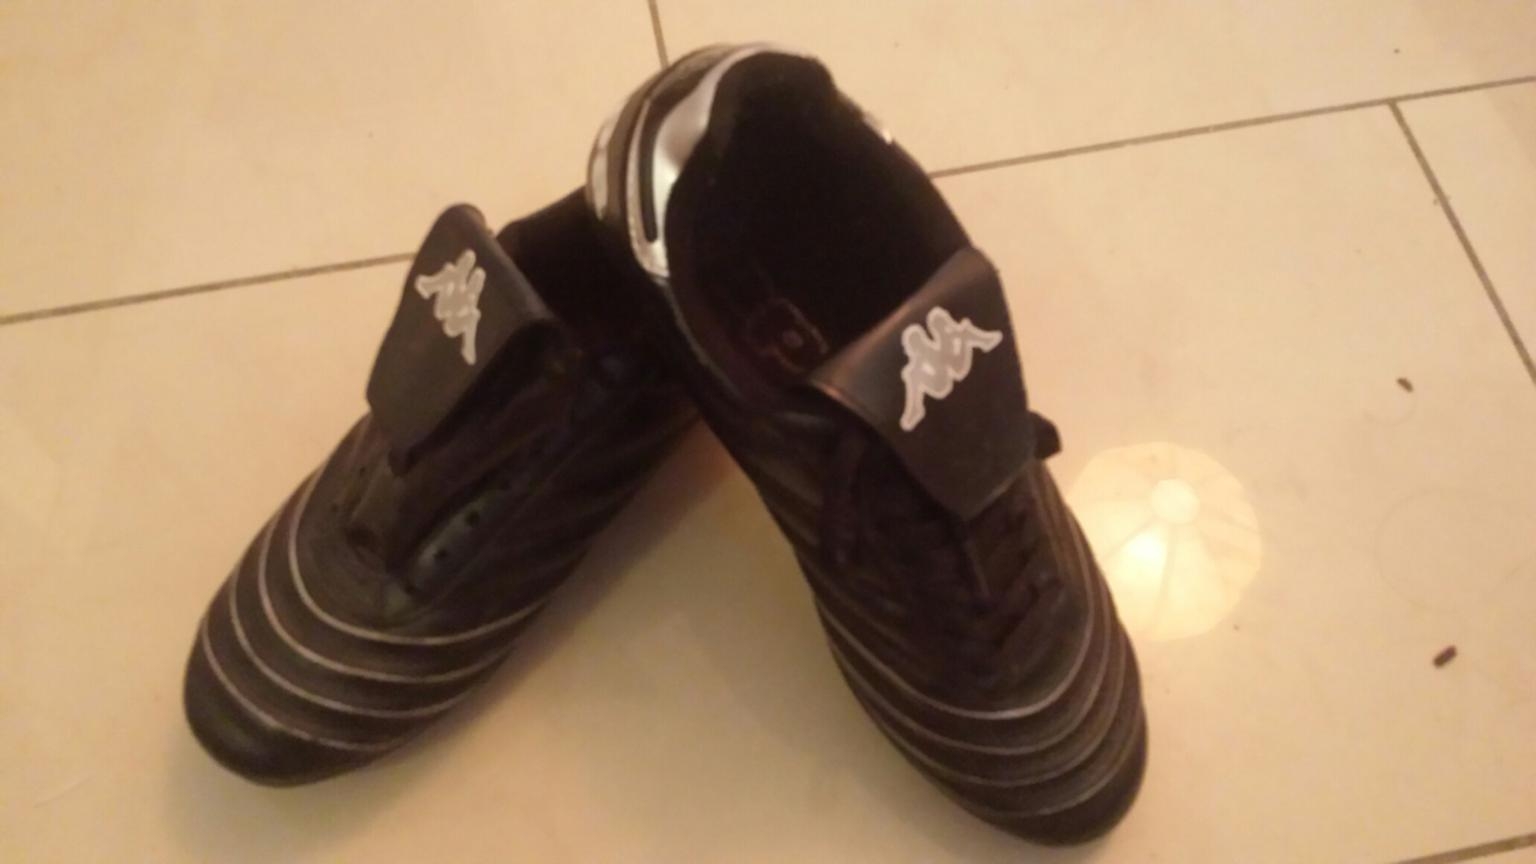 sport schuhe in 42115 Wuppertal for €10.00 for sale | Shpock